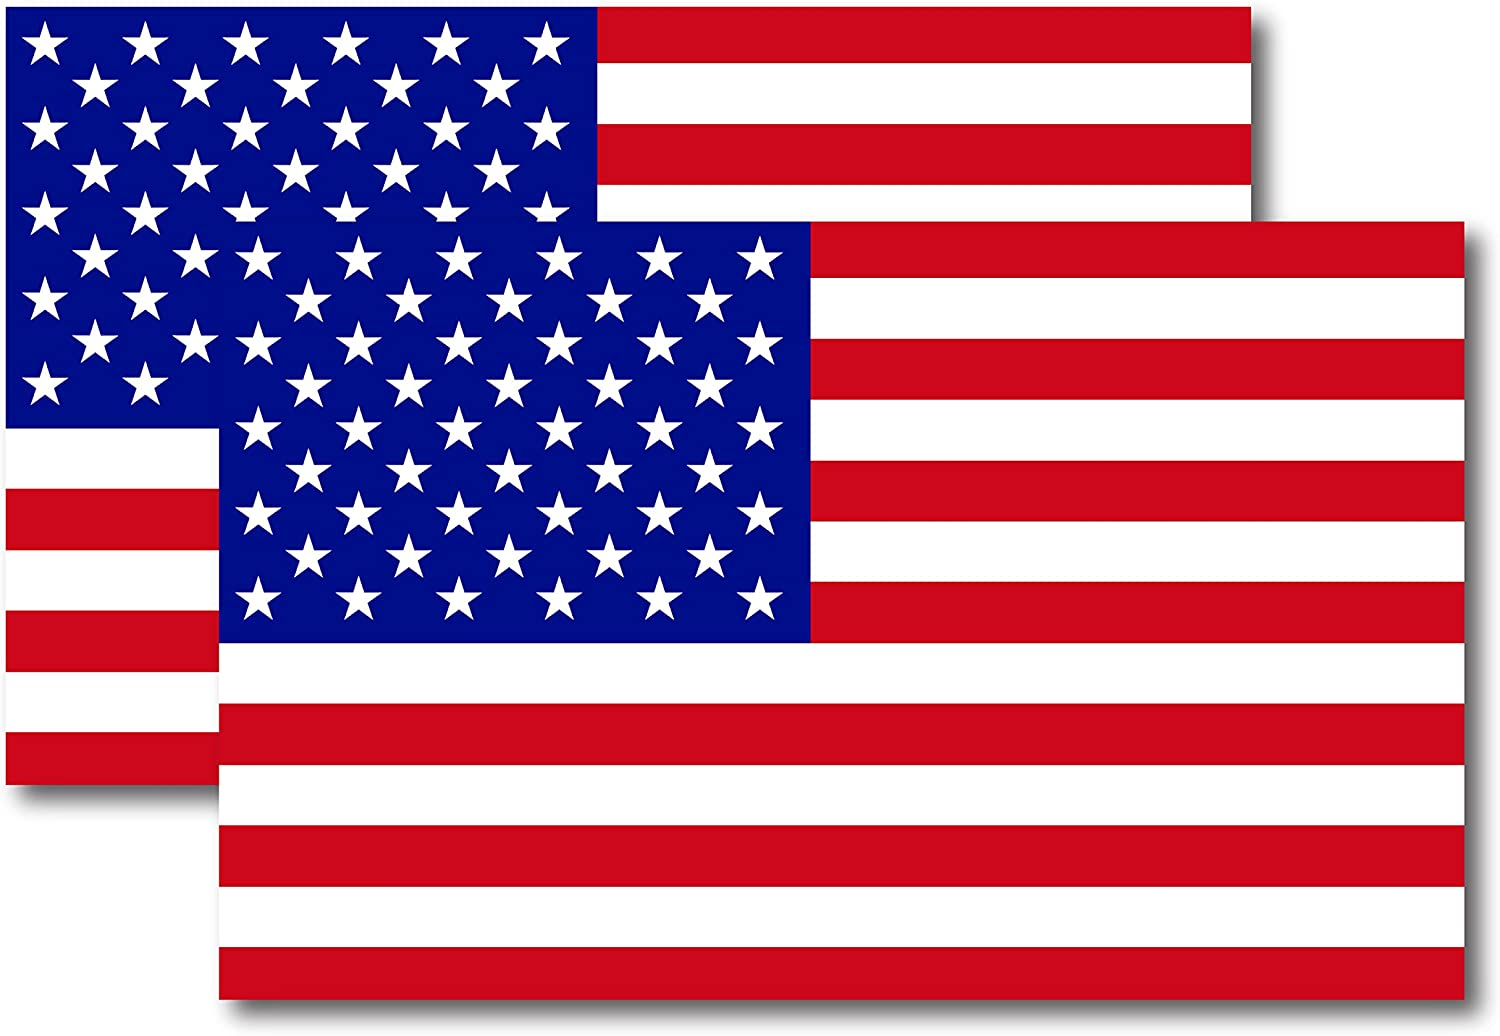 We Stand for The Flag American Flag Car Magnet Decal 6 in x 4 in Heavy Duty for Car Truck SUV Waterproof Magnet Me Up